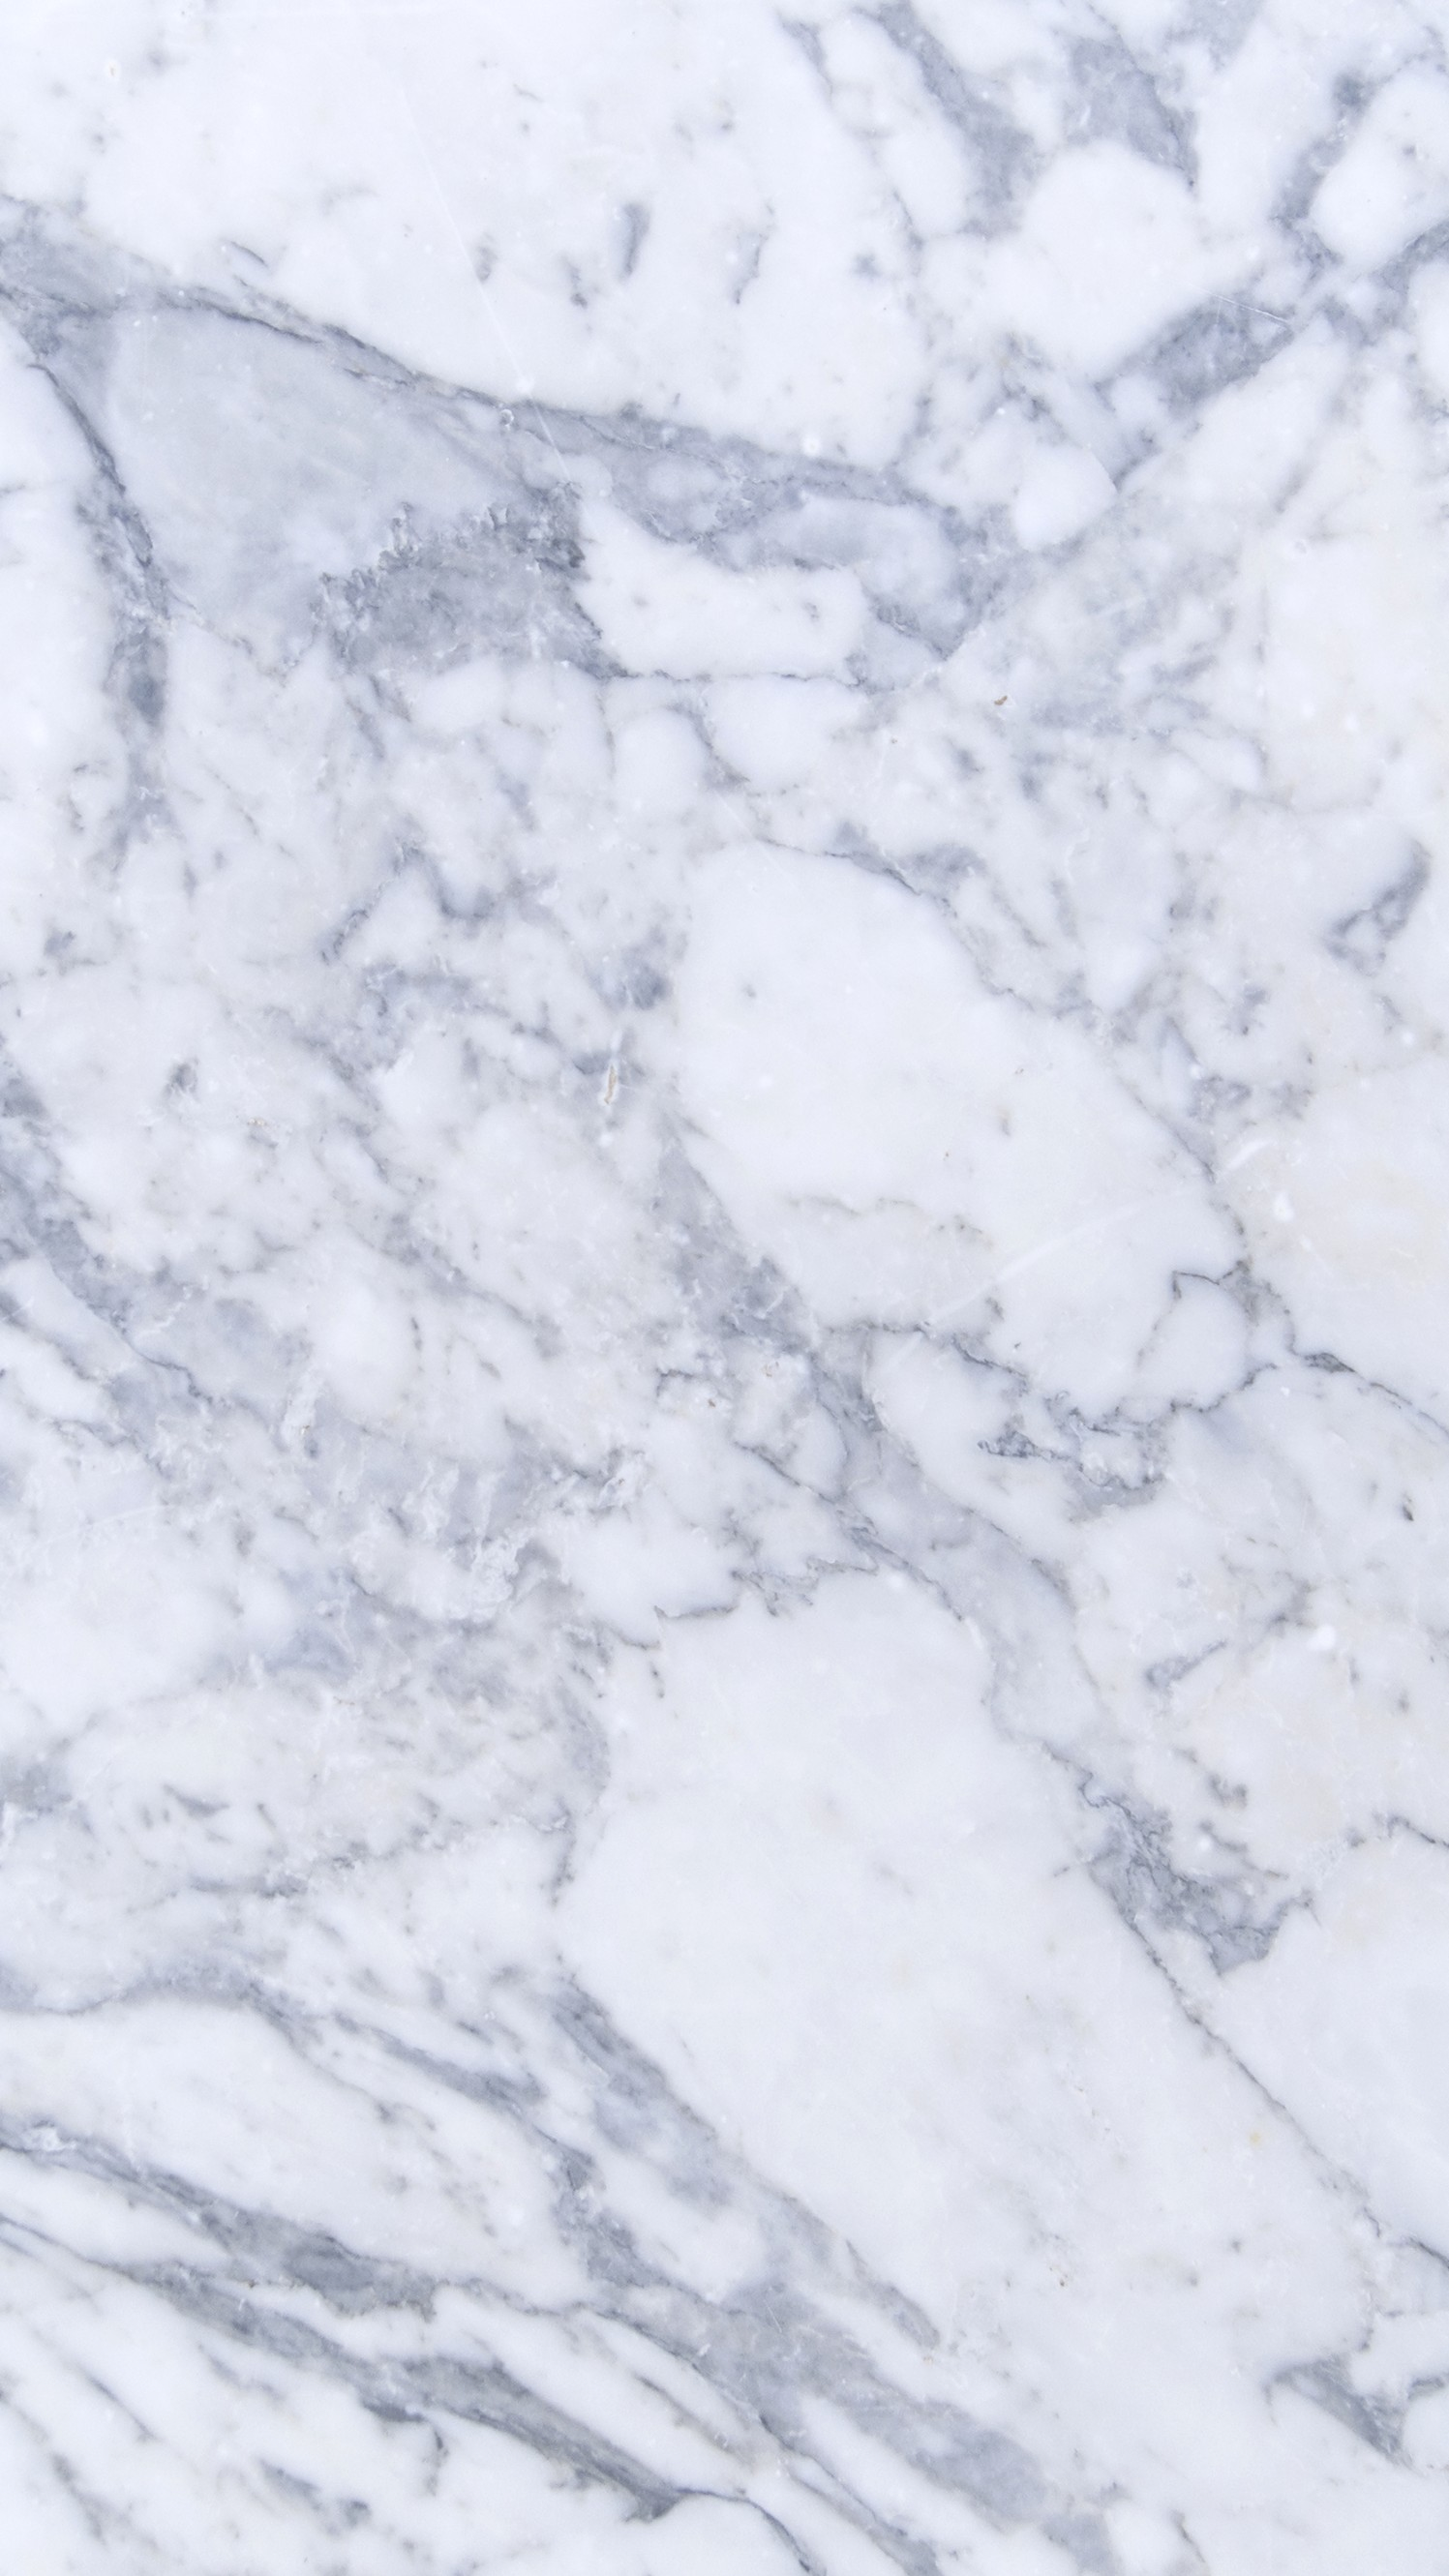 Marble Wallpaper Download Free Awesome Full Hd Backgrounds For